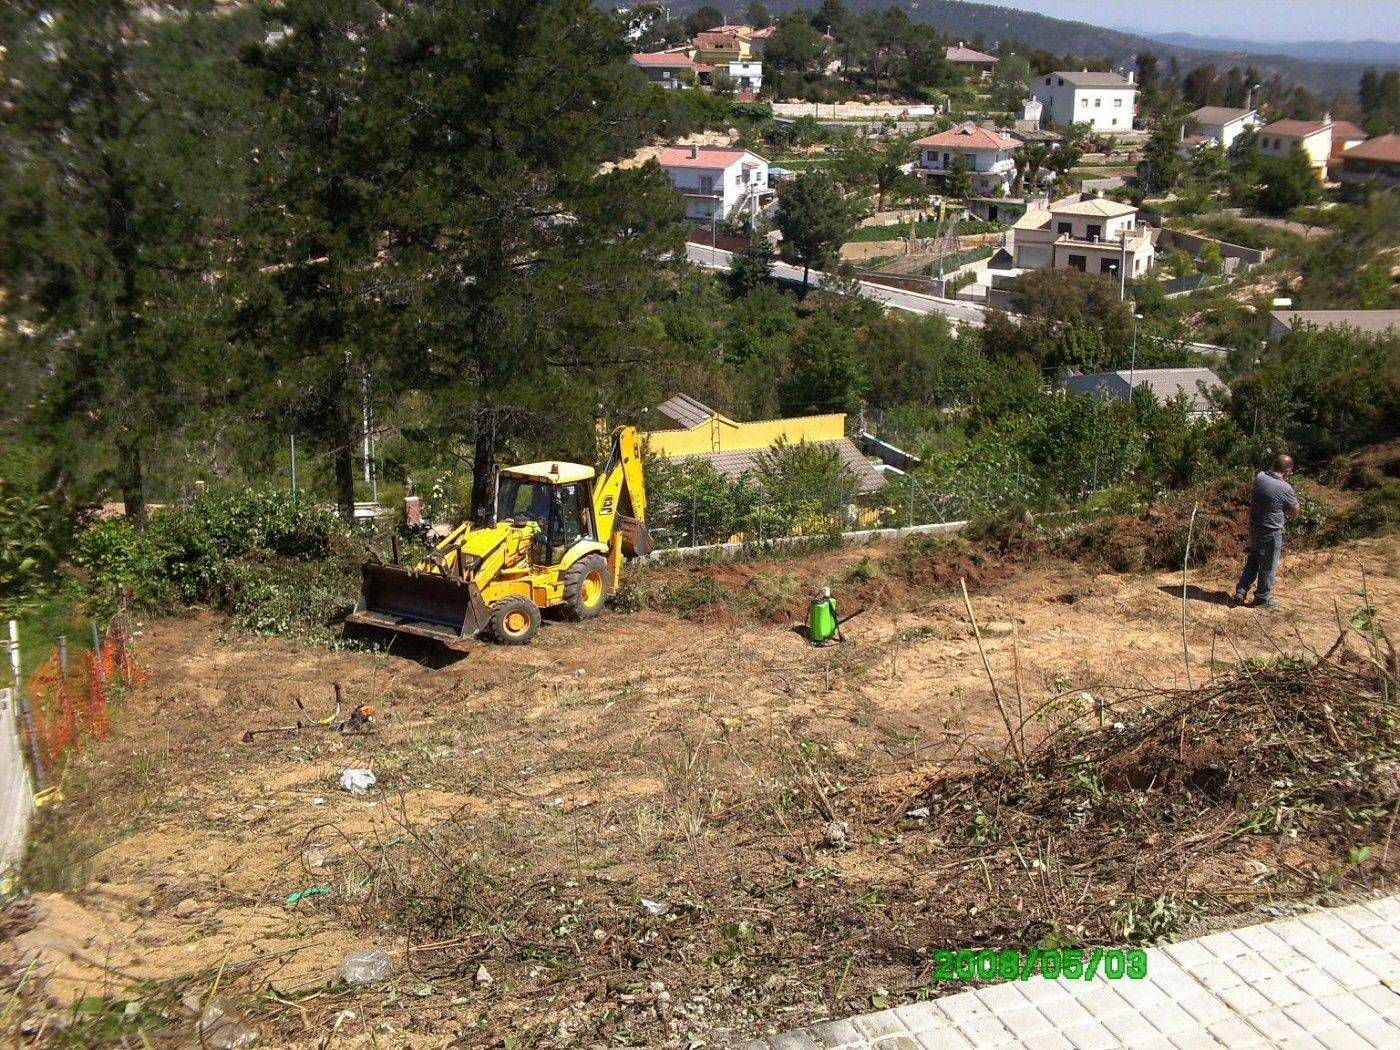 Residential Plot in Calle margaritas, 6. Se vende terreno urb can fornaca 850 m2